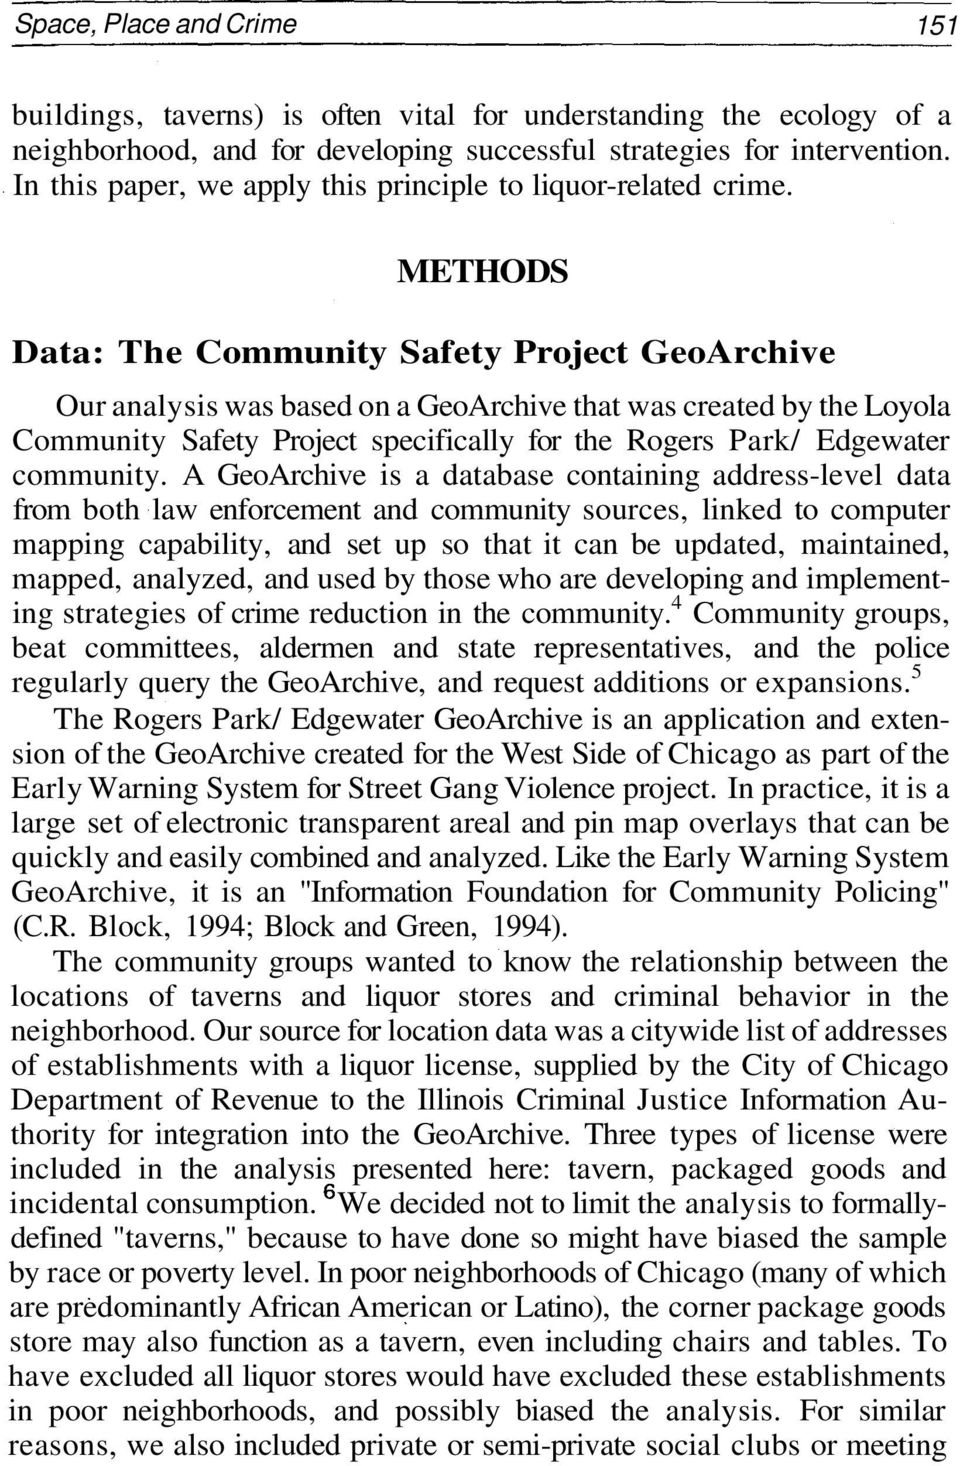 METHODS Data: The Community Safety Project GeoArchive Our analysis was based on a GeoArchive that was created by the Loyola Community Safety Project specifically for the Rogers Park/ Edgewater